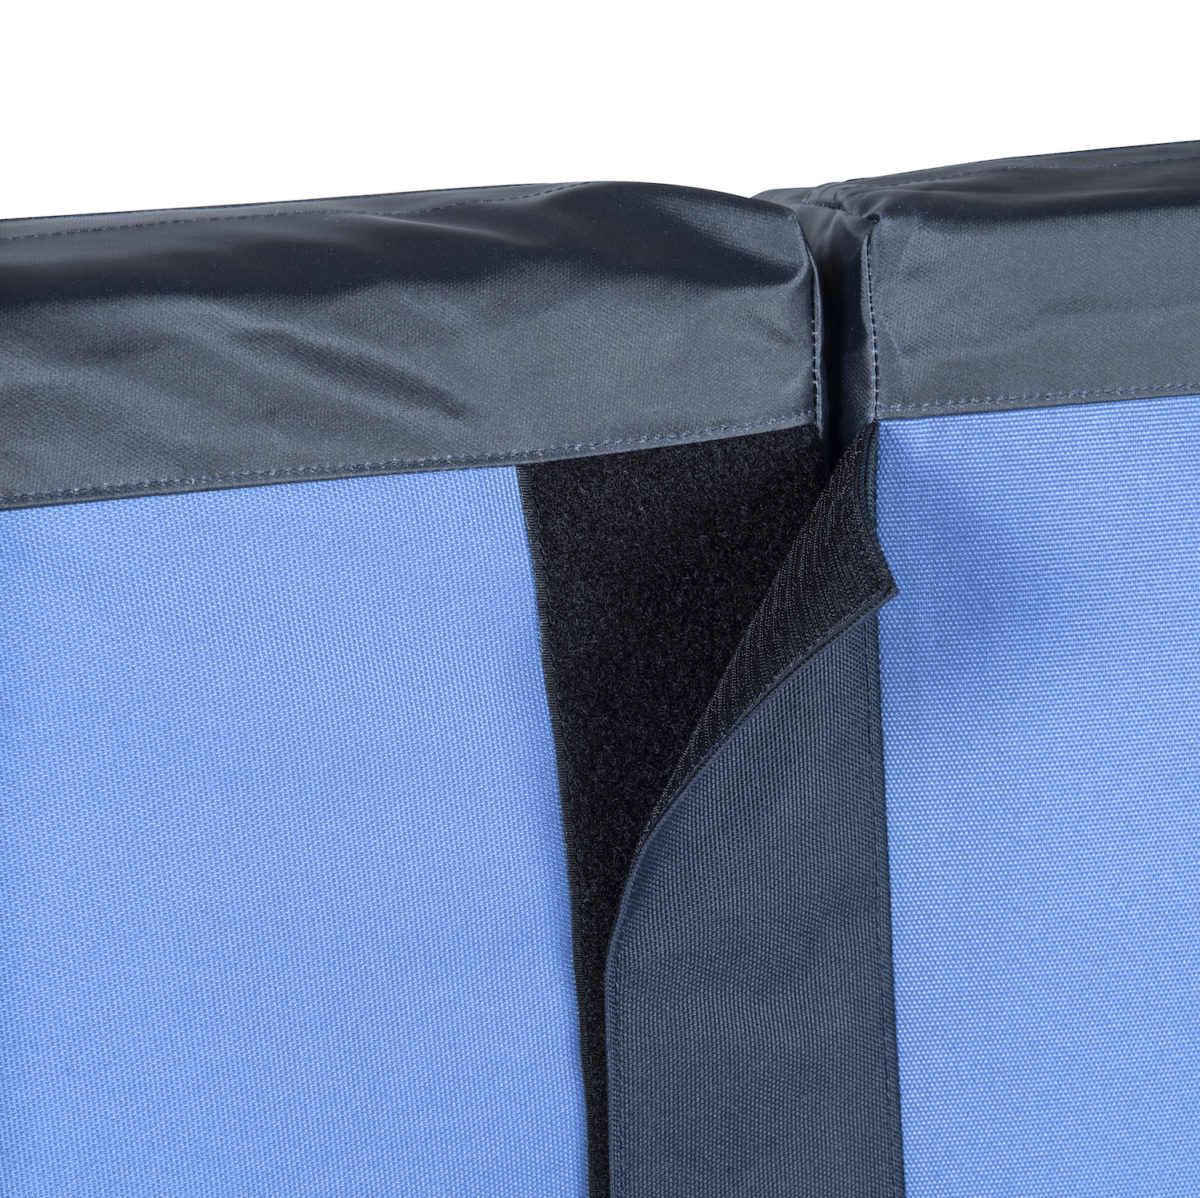 double crash pad with velcro snap